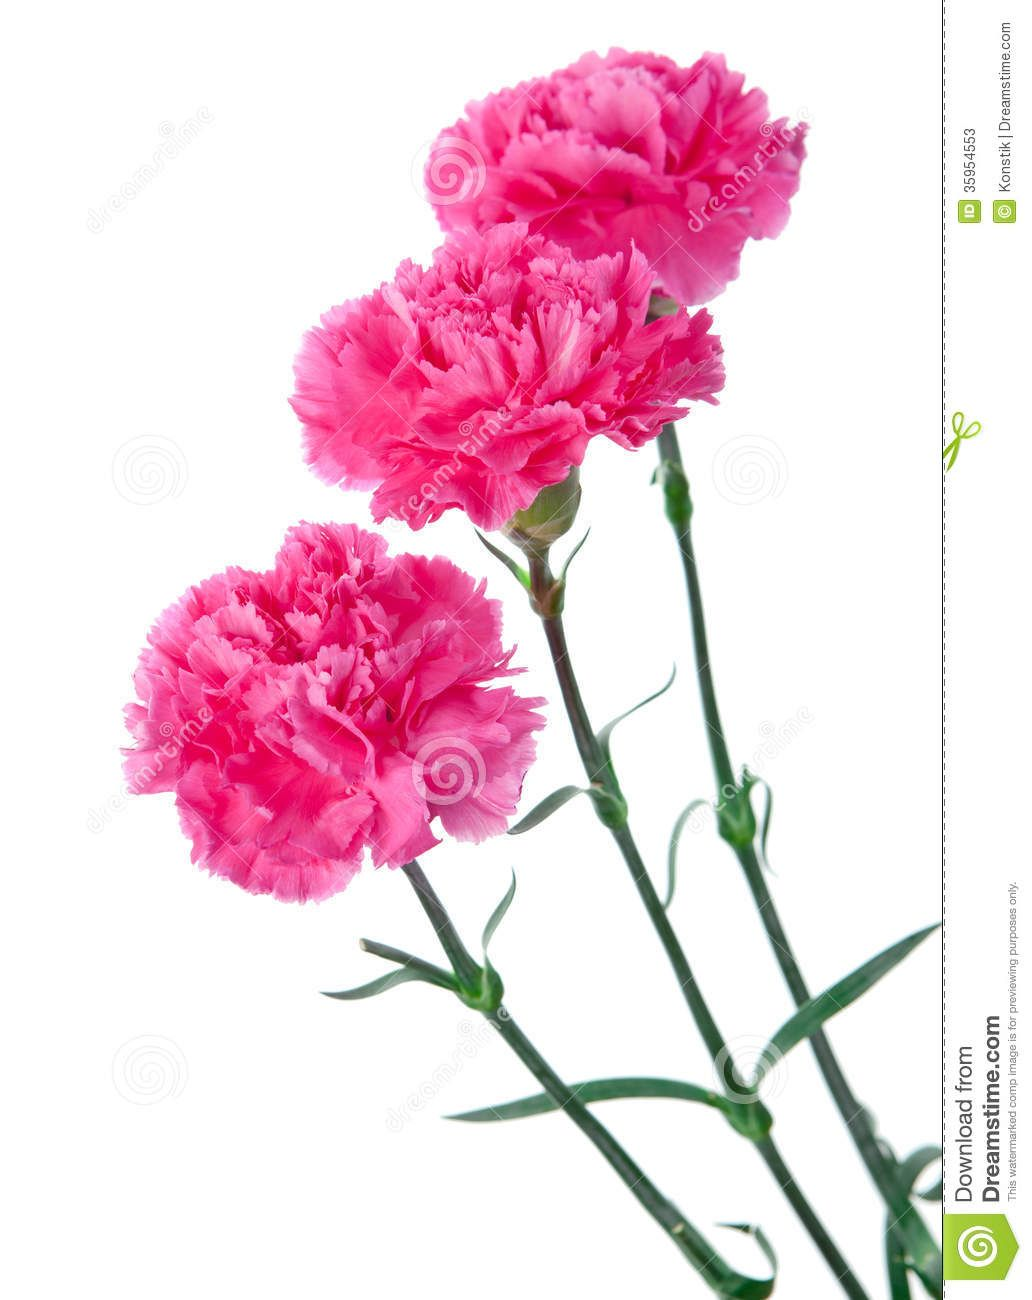 Pink Carnation Background Three Pink Carnations Still Life On A White Background Stock Photos Pink Carnations Carnations White Background